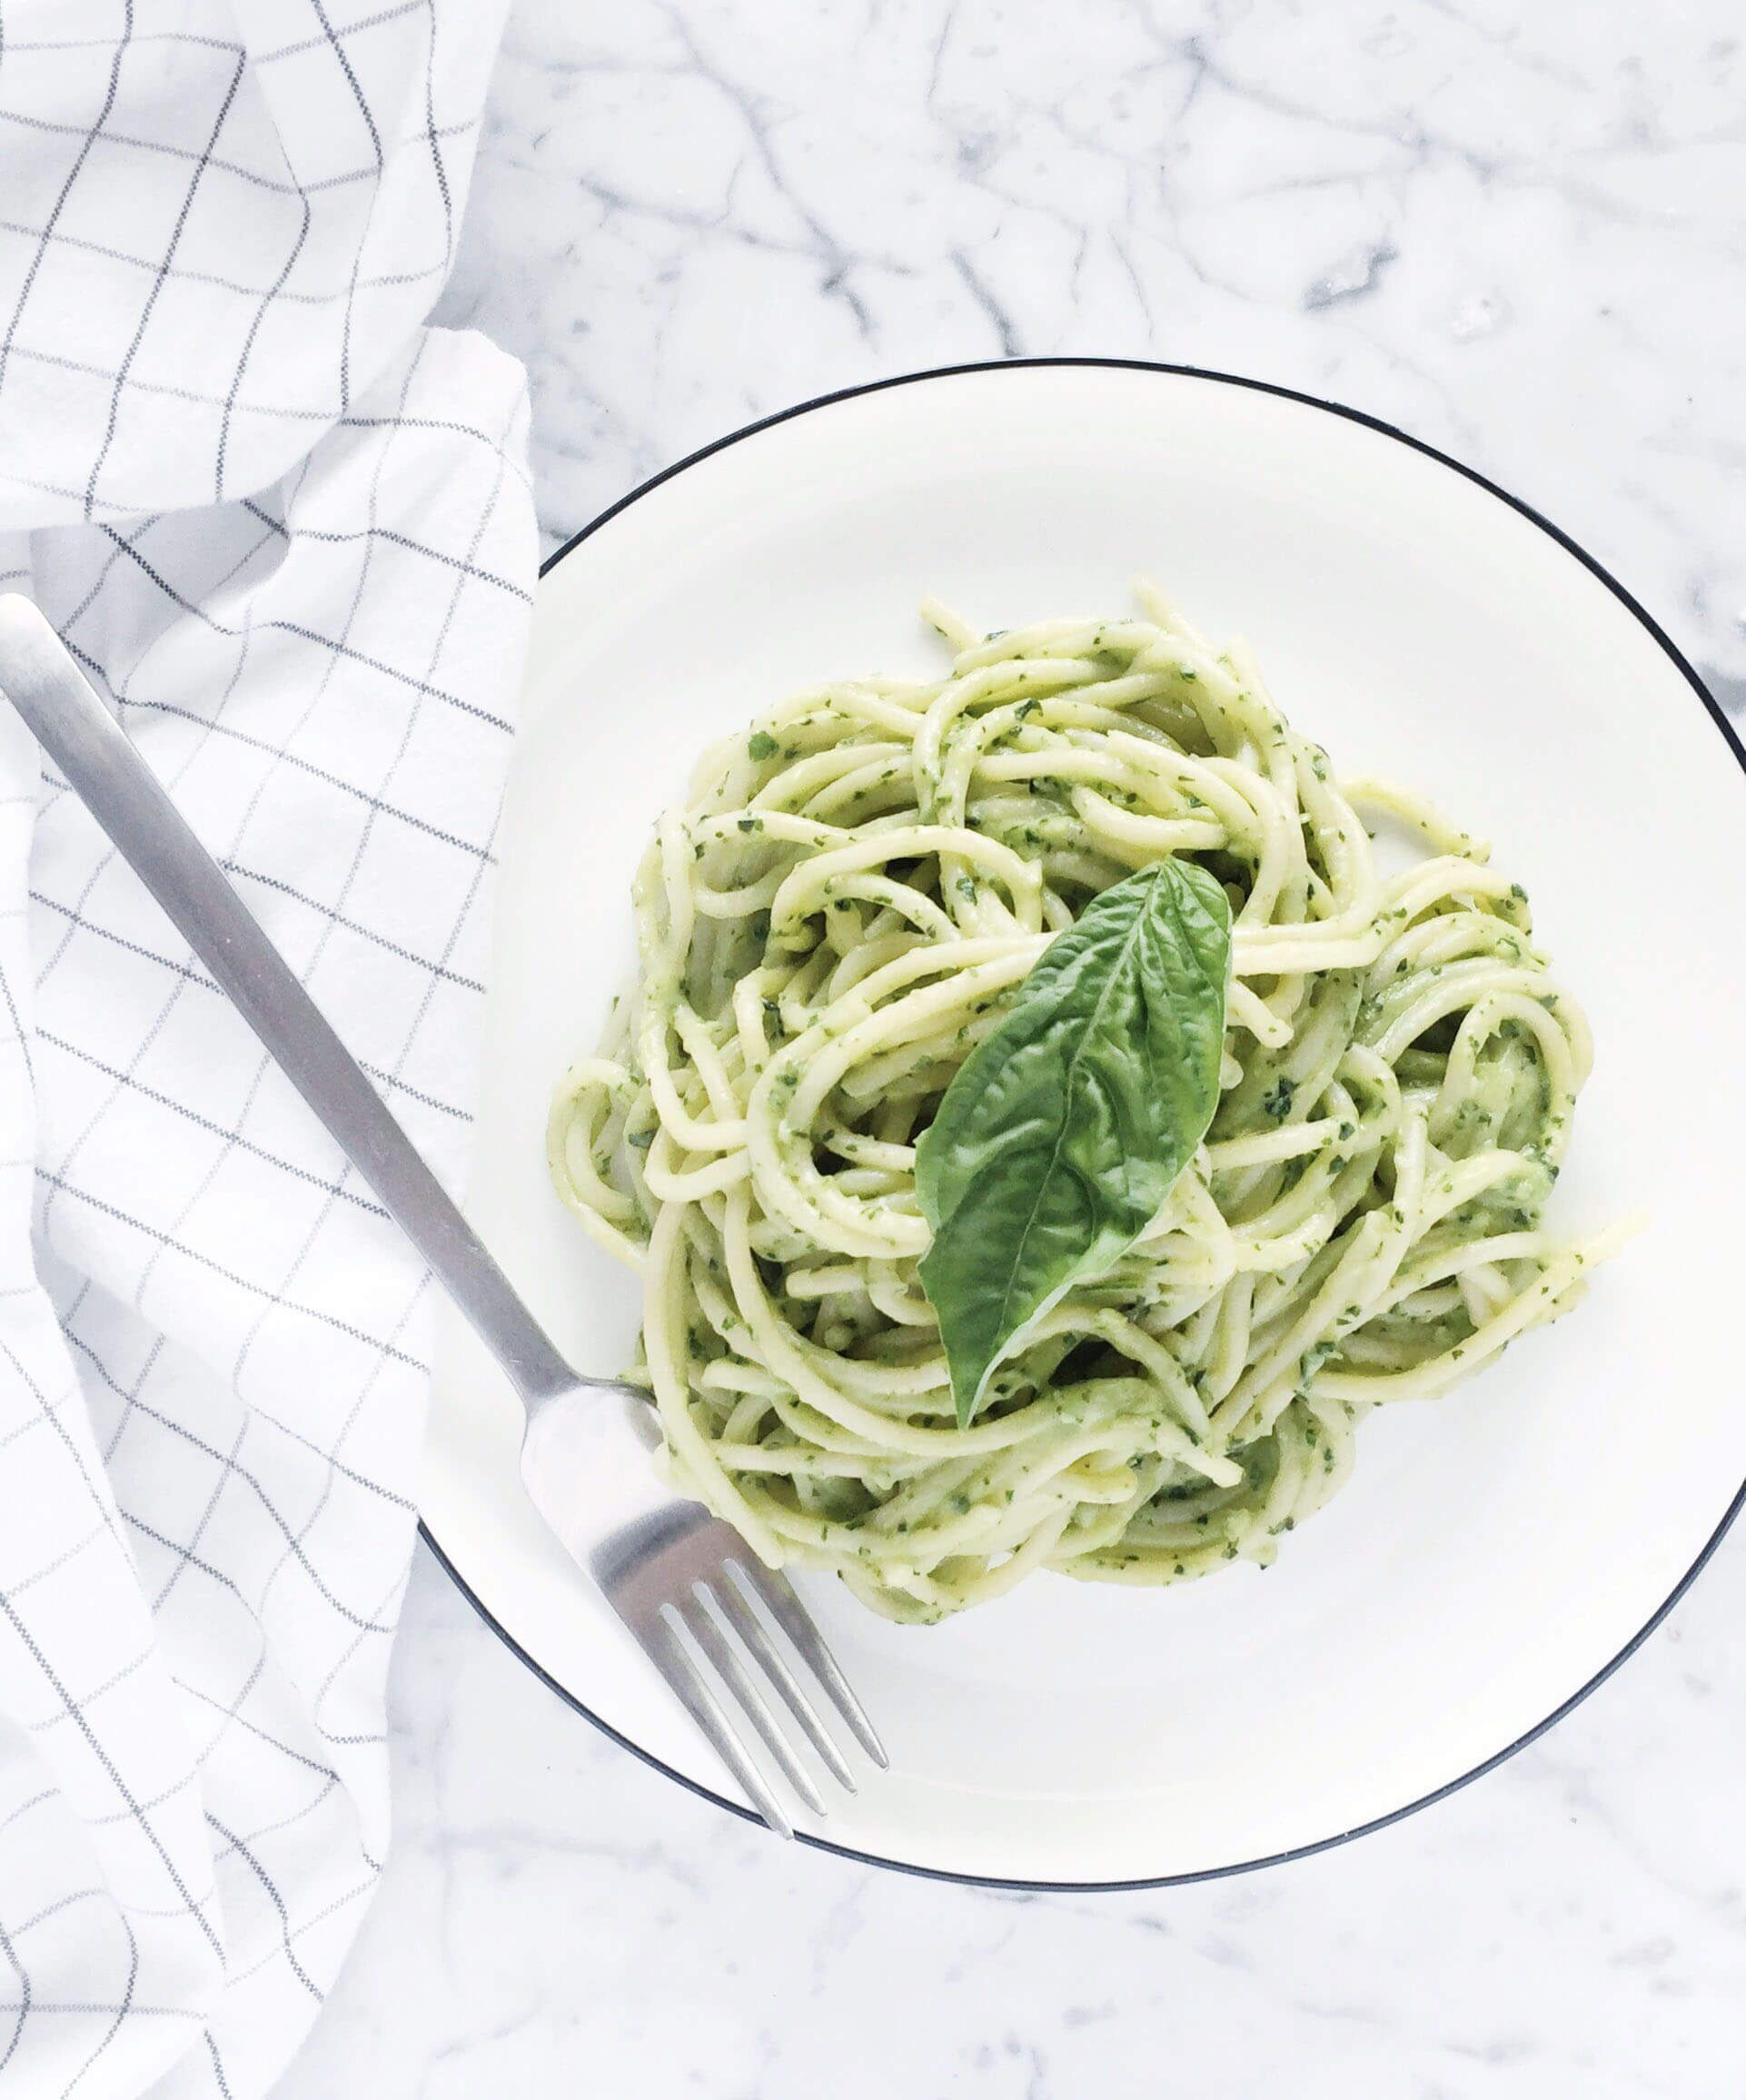 This Has To Be One Of The Most Perfect Pastas On Earth Brimming With Flavour From Fresh Garlic Mounds Avocado Pasta Stuffed Avocado Healthy Pasta Nutrition